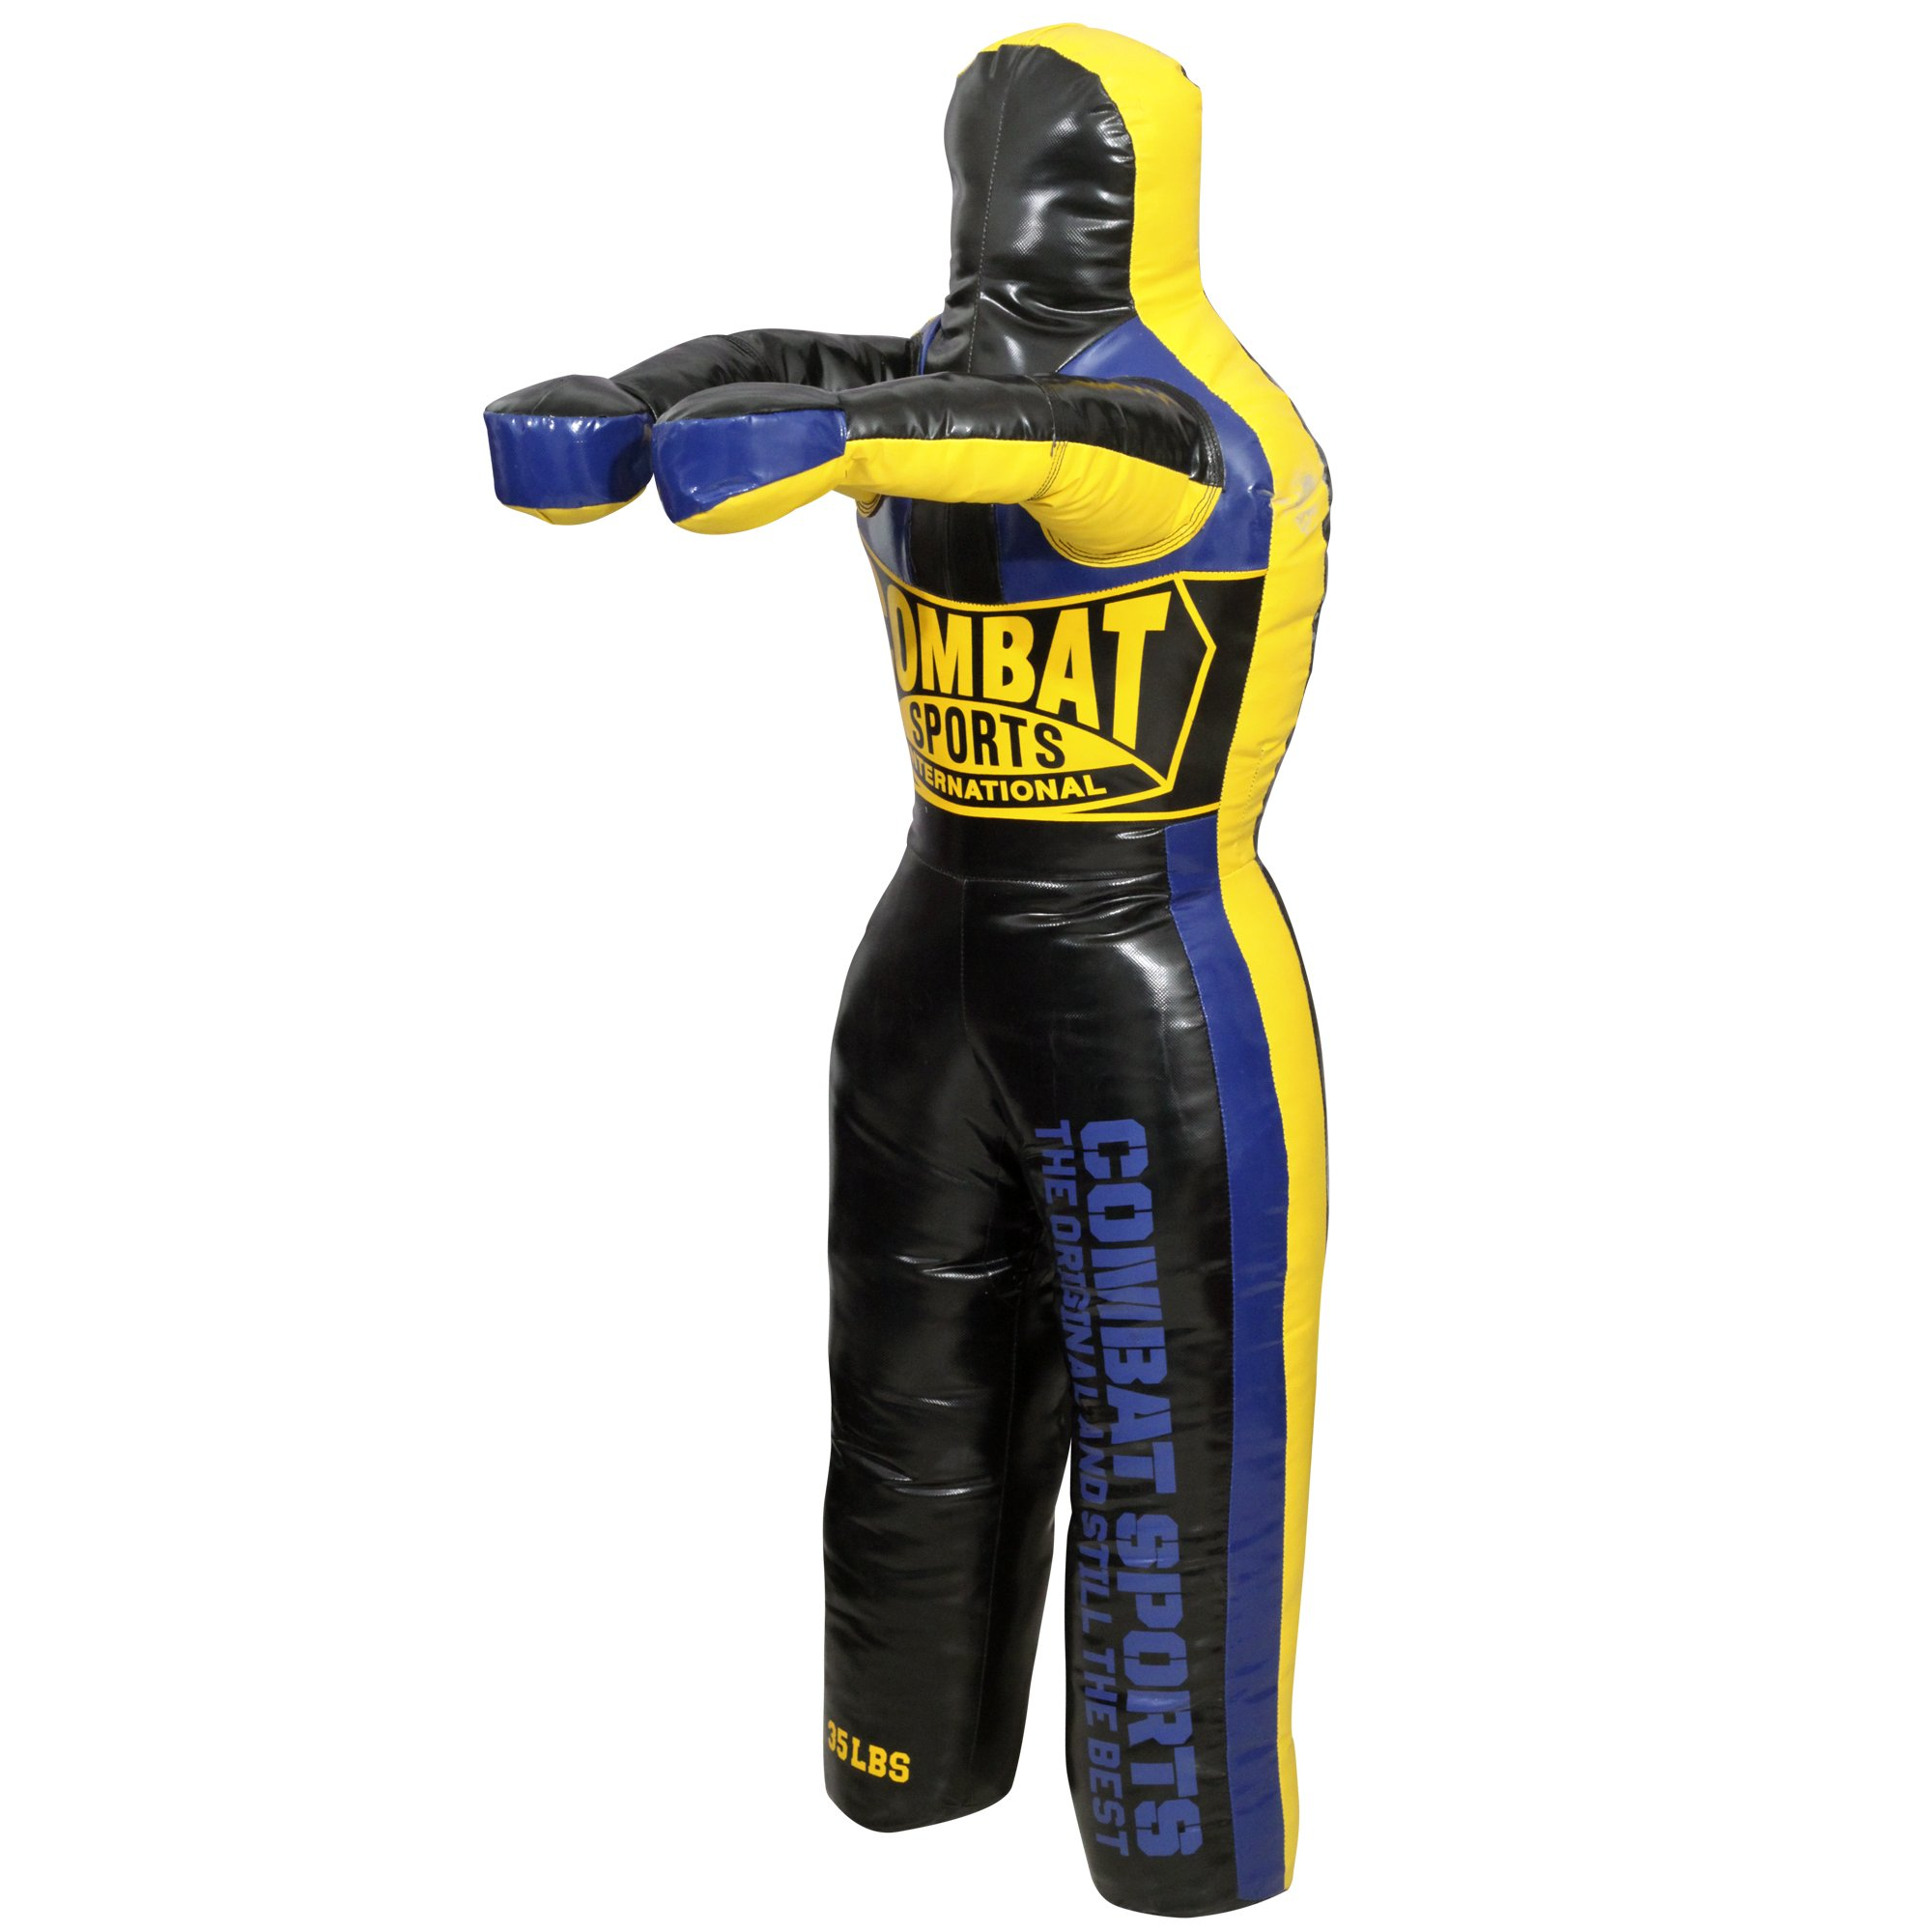 Combat Sports Youth Grappling MMA Wrestling Submission Fitness Jui Jitsu Dummy, 35 lb